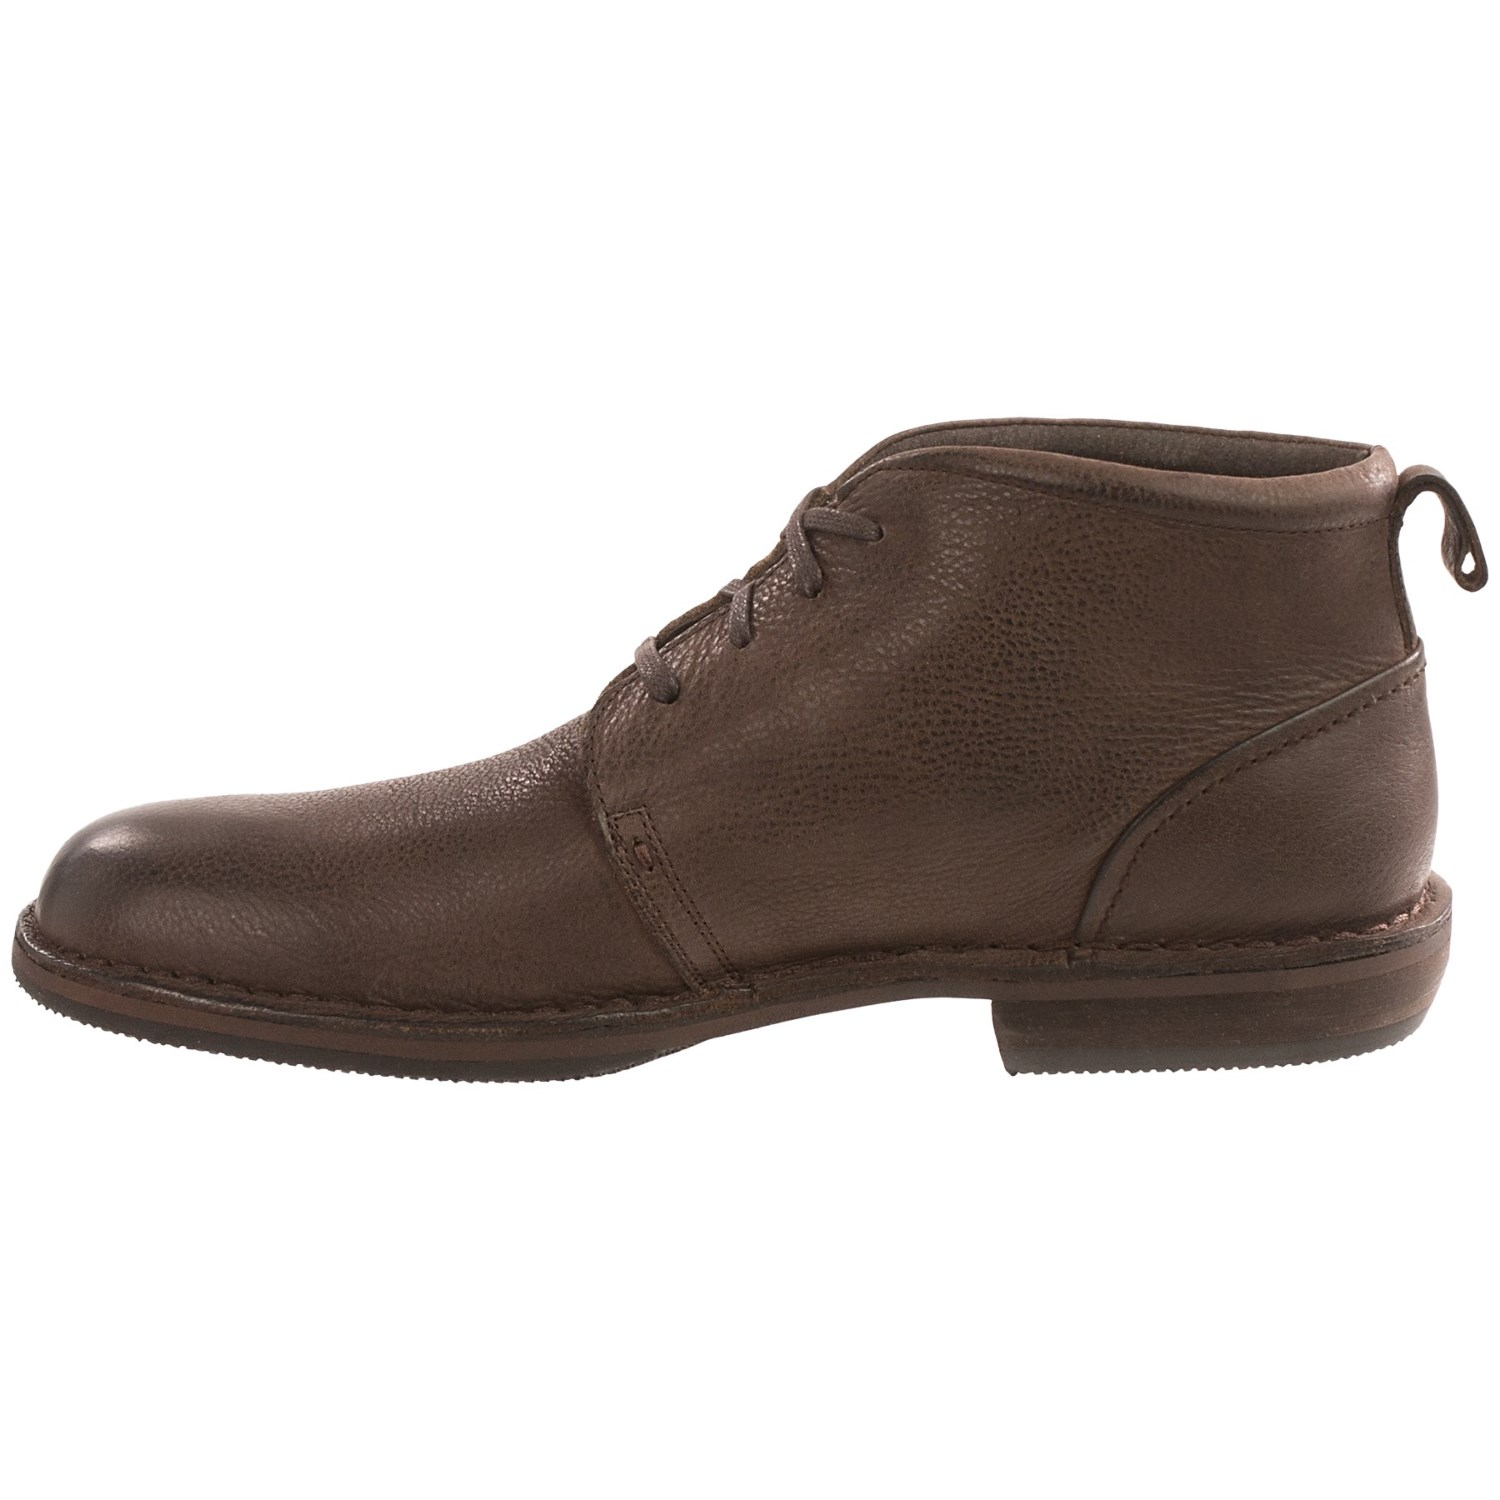 mens chukka boots clearance 28 images mens chukka